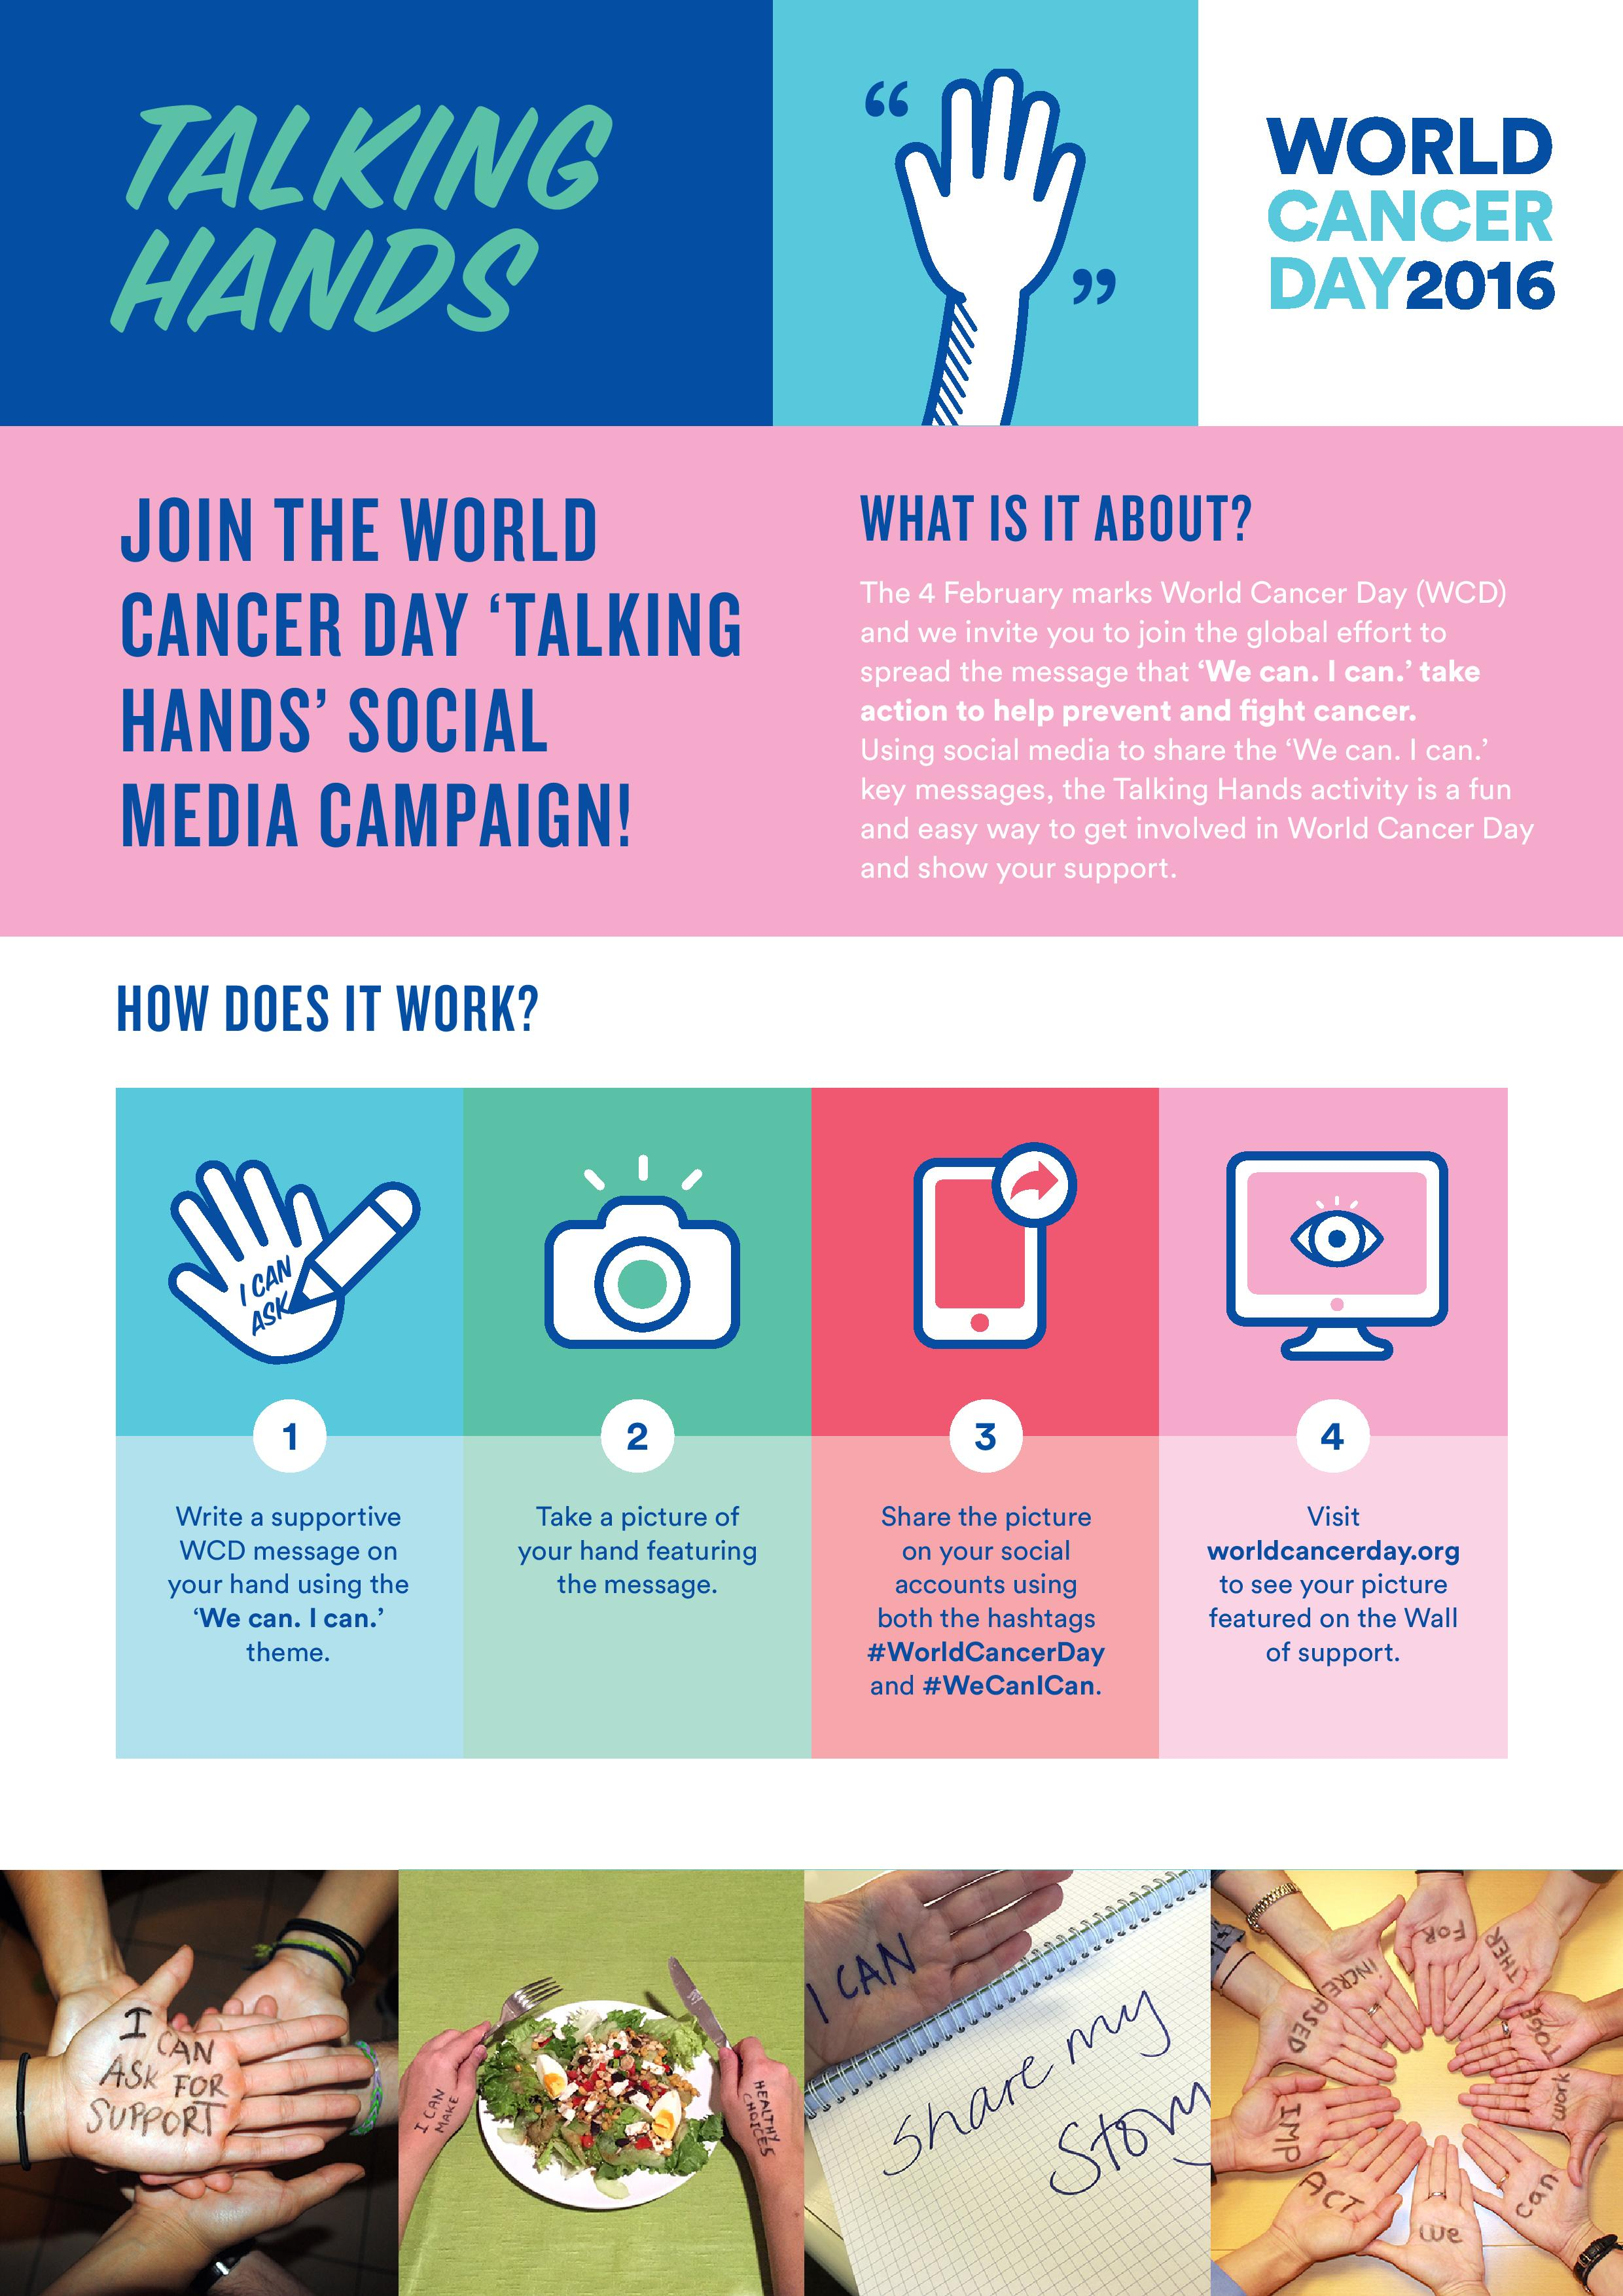 World Cancer Day 2016 - Talking Hands